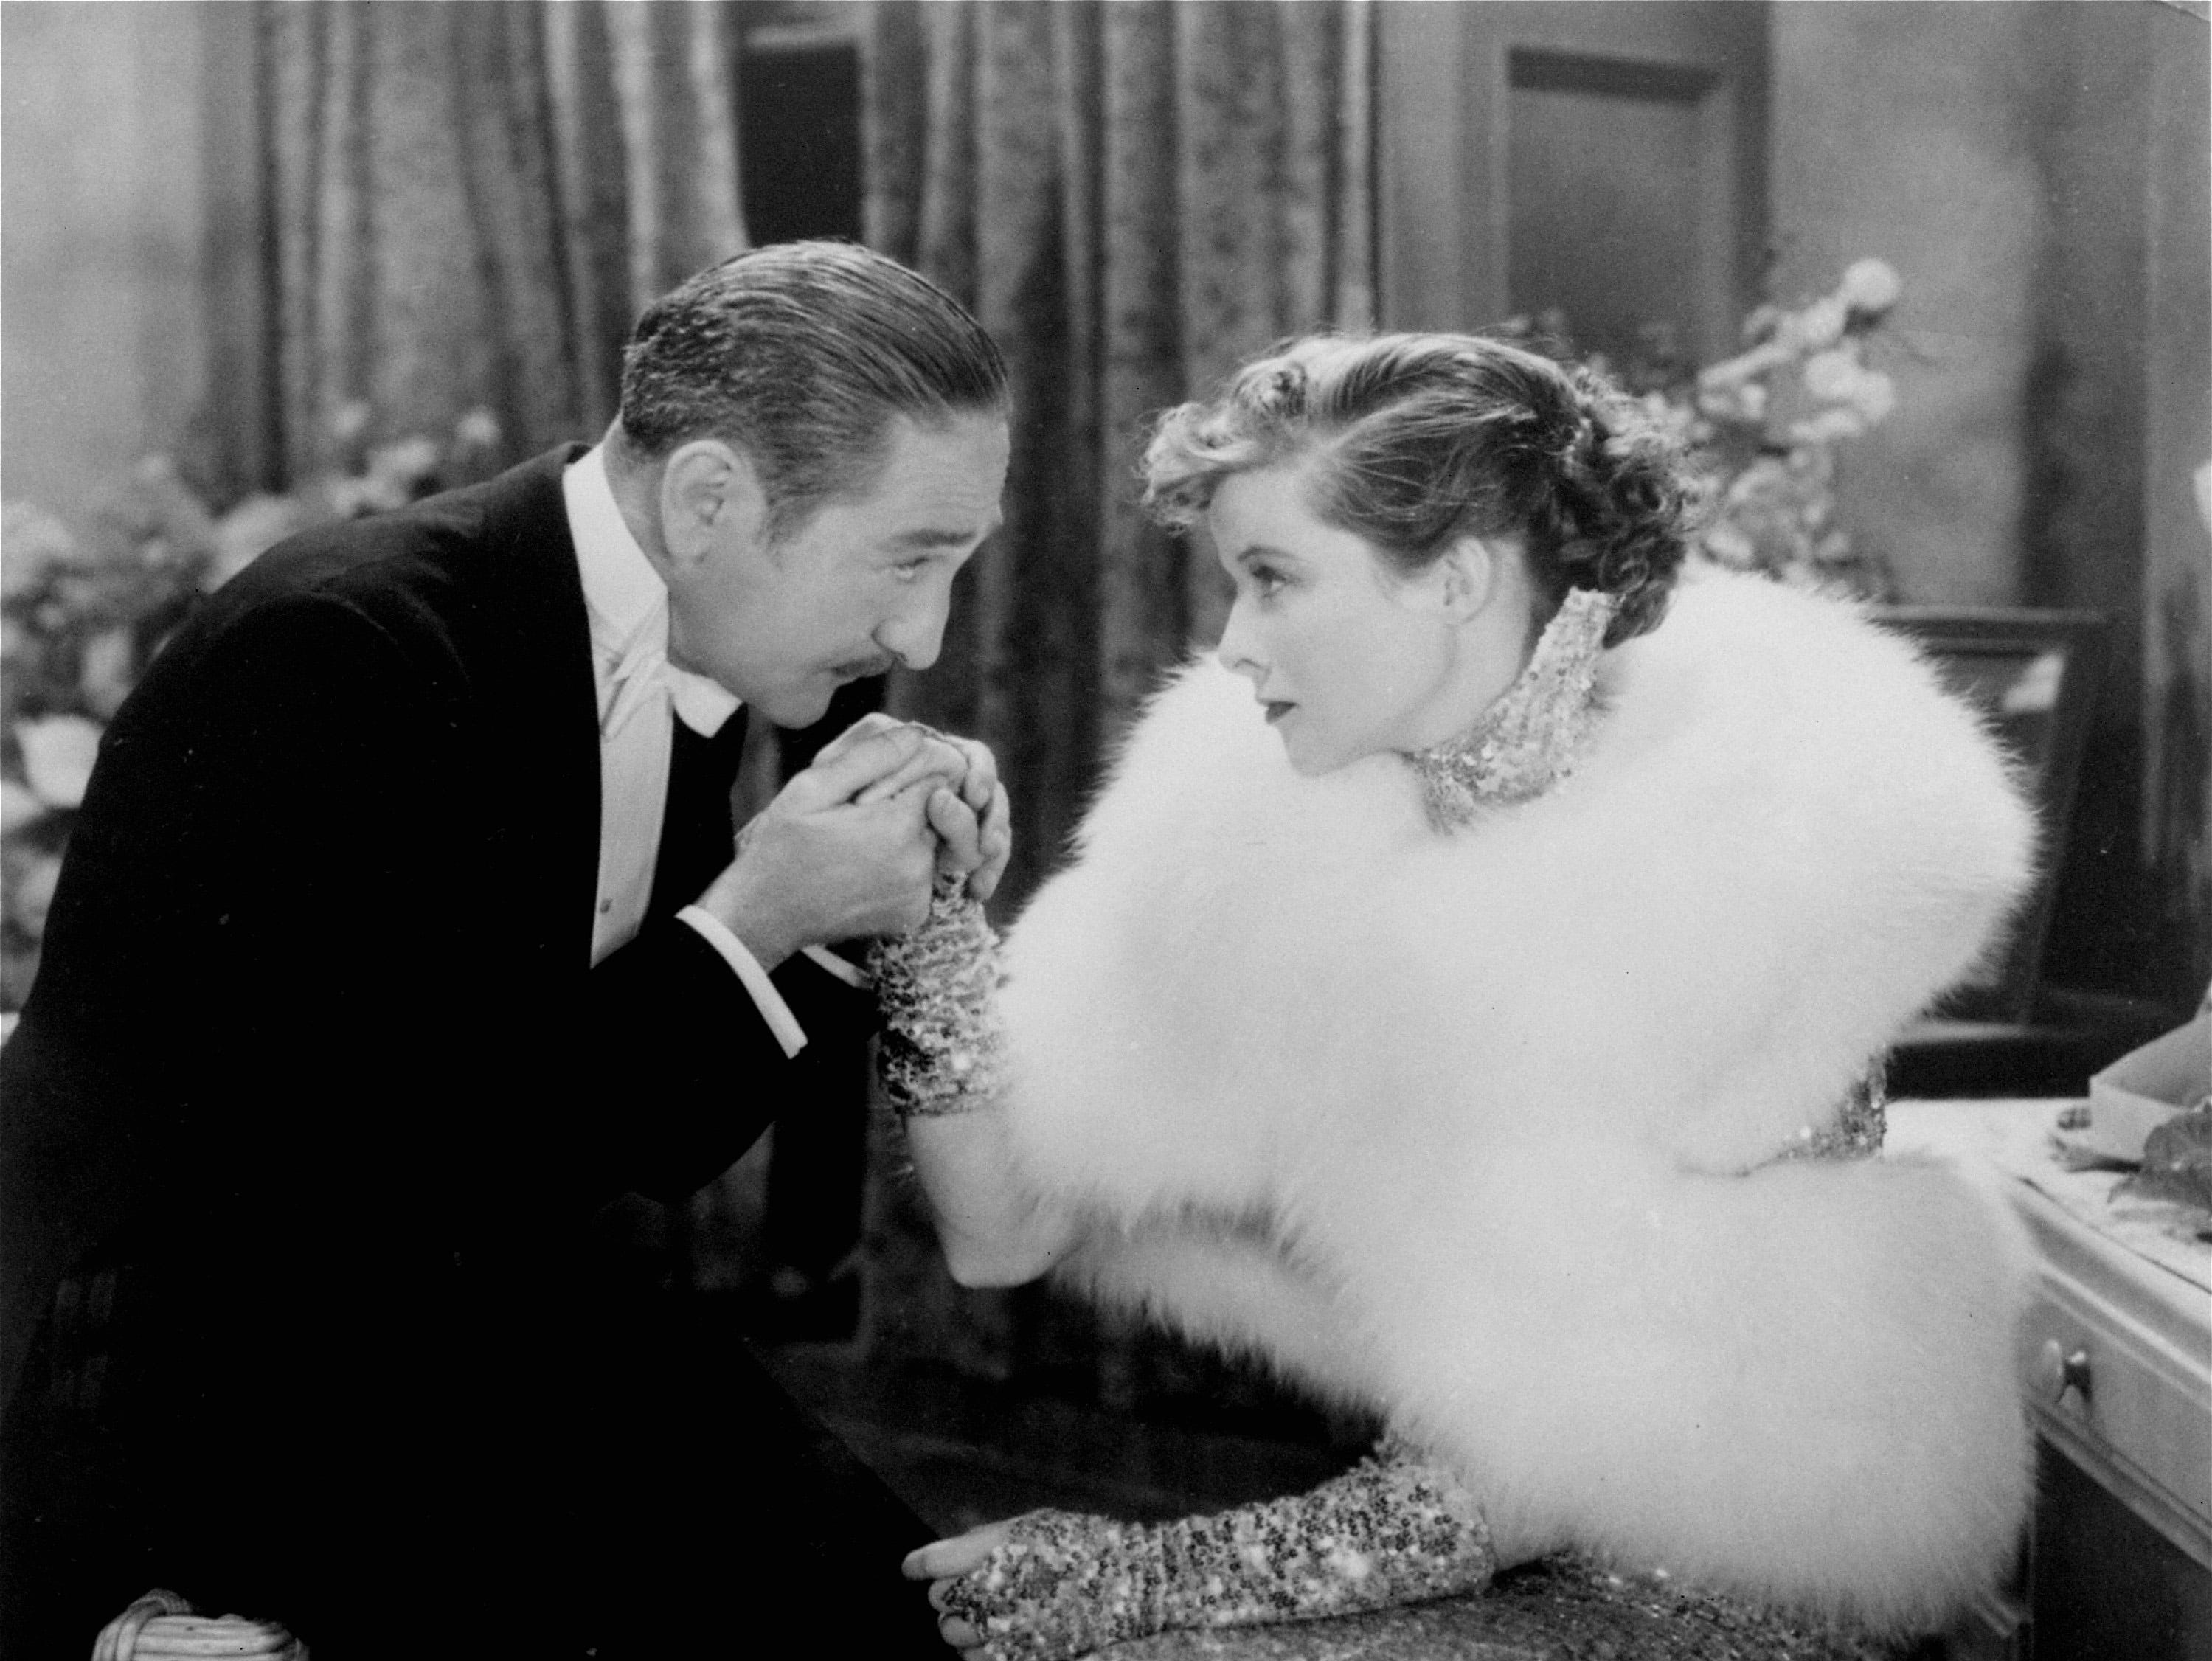 """one-time use only  Hollywood star-to-be Katharine Hepburn and co-star Adolphe Menjou are pictured in the 1933 film, """"Morning Glory.""""  Hepburn won her first Academy Award for her role as a stage struck young actress."""